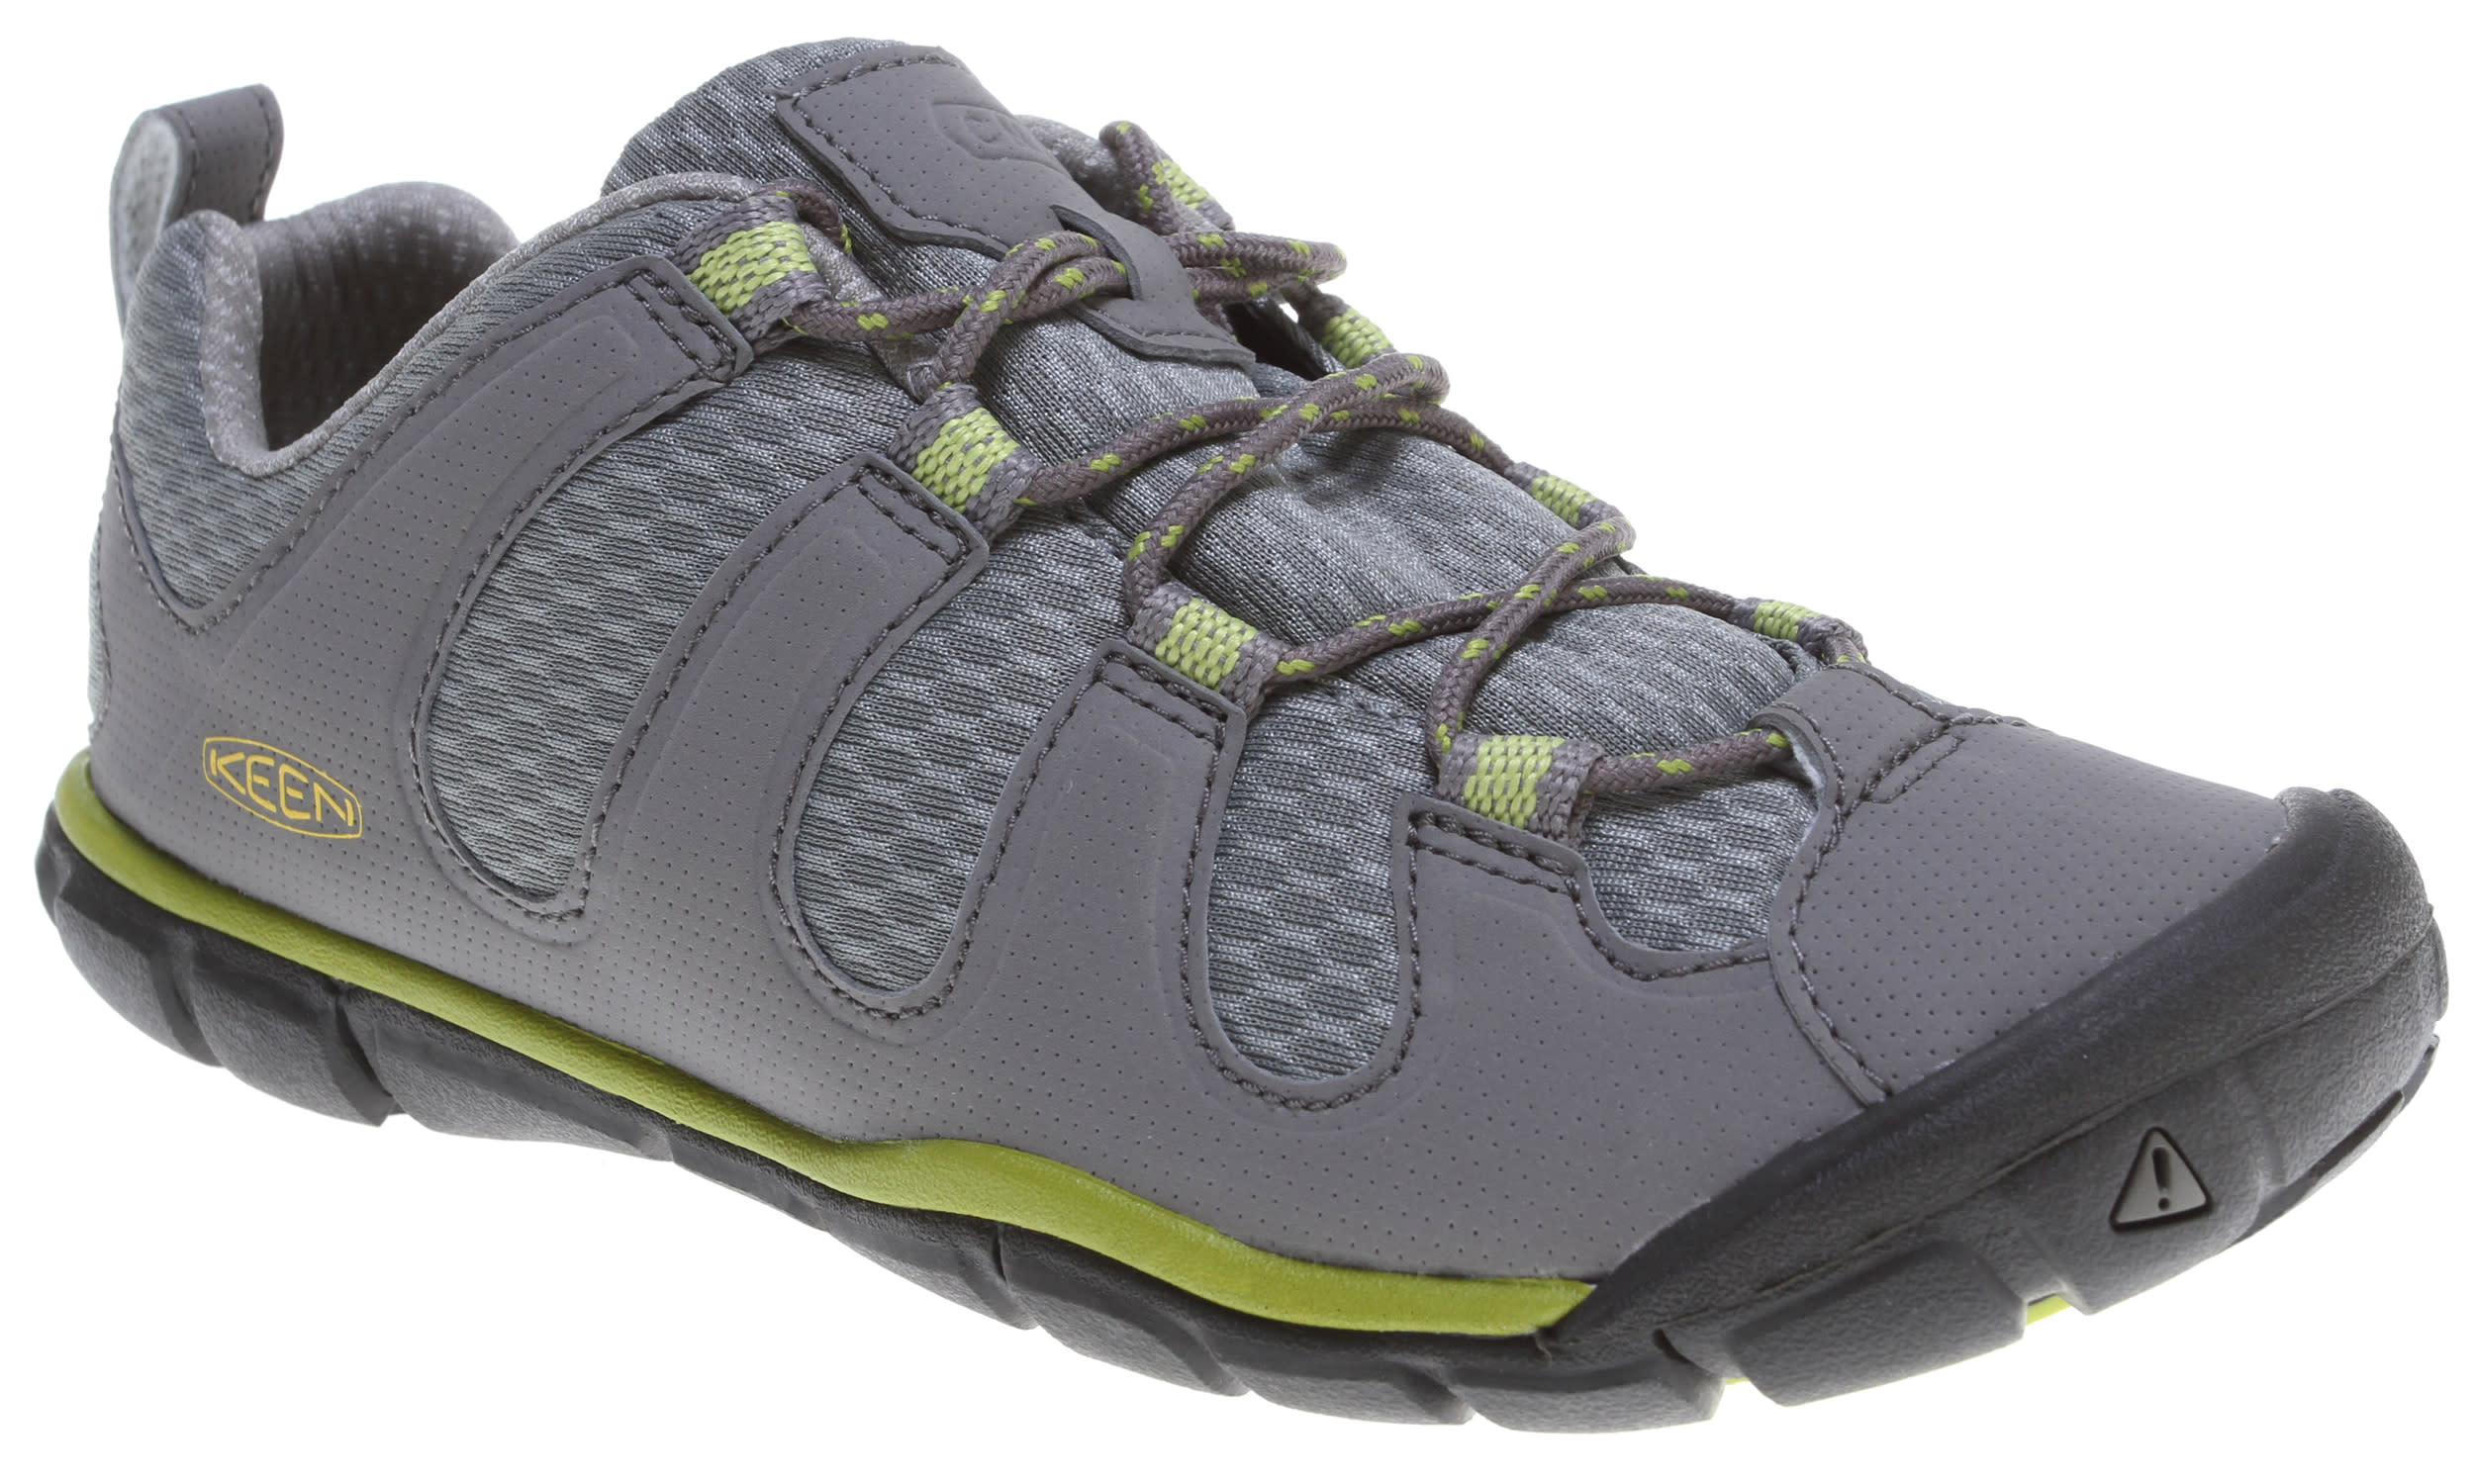 KEEN® was born from one simple question: Can a sandal protect your toes? The answer is yes and the reason is the KEEN Newport, a waterproof sandal featuring KEEN Patented Toe Protection. Today, KEEN makes a broad selection of shoes for men, women and kids balwat.gaar that goes from trail to .